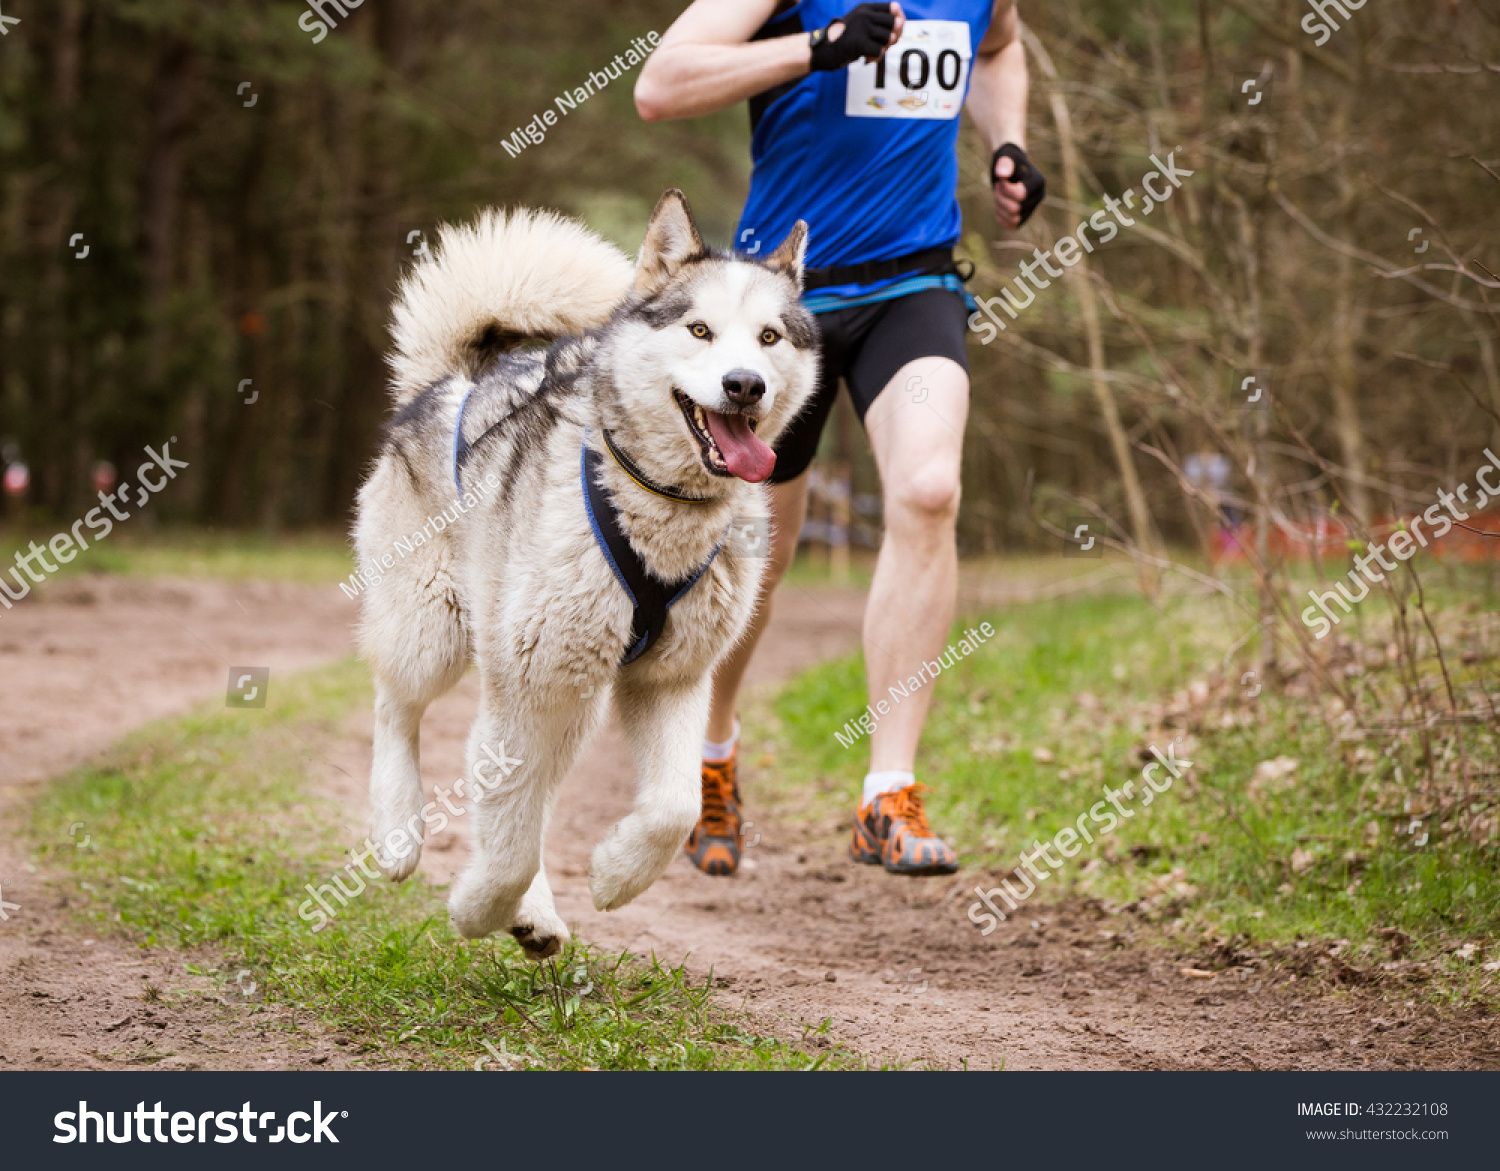 Sled Dog Sport Races canicross with Siberian Husky and Musher #432232108